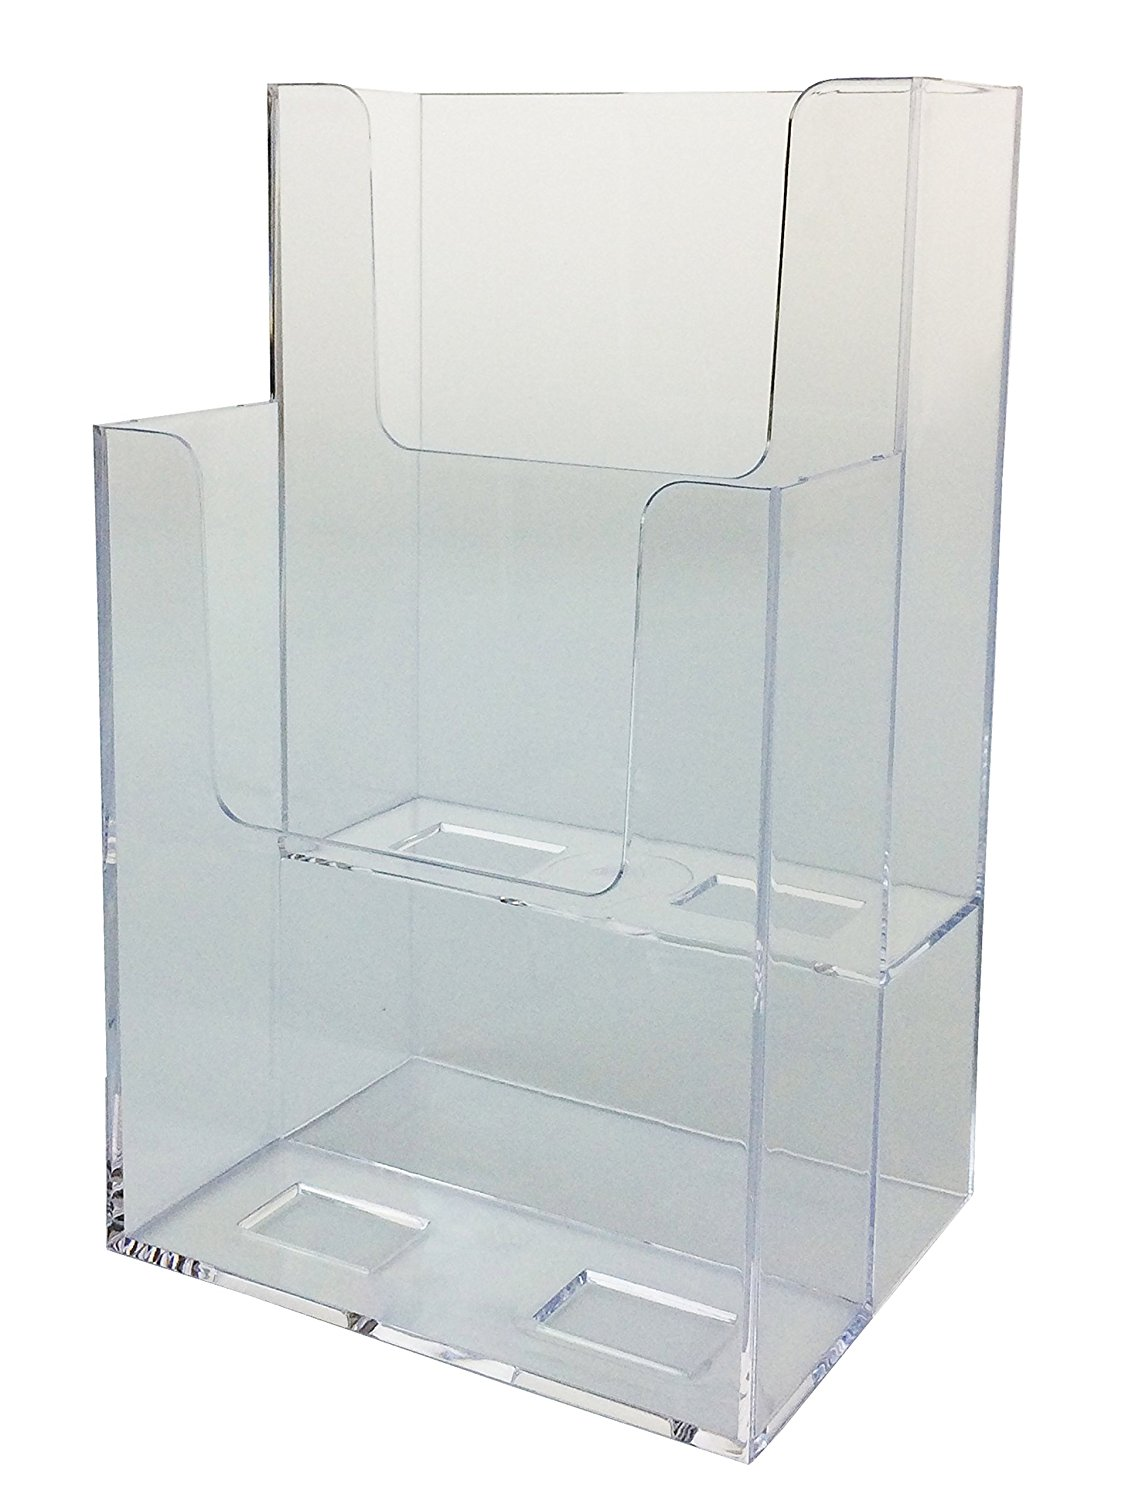 Marketing Holders 2 Tier Clear Acrylic Brochure Holder Literature Display for 4x9 Pamphlets 50 Pack